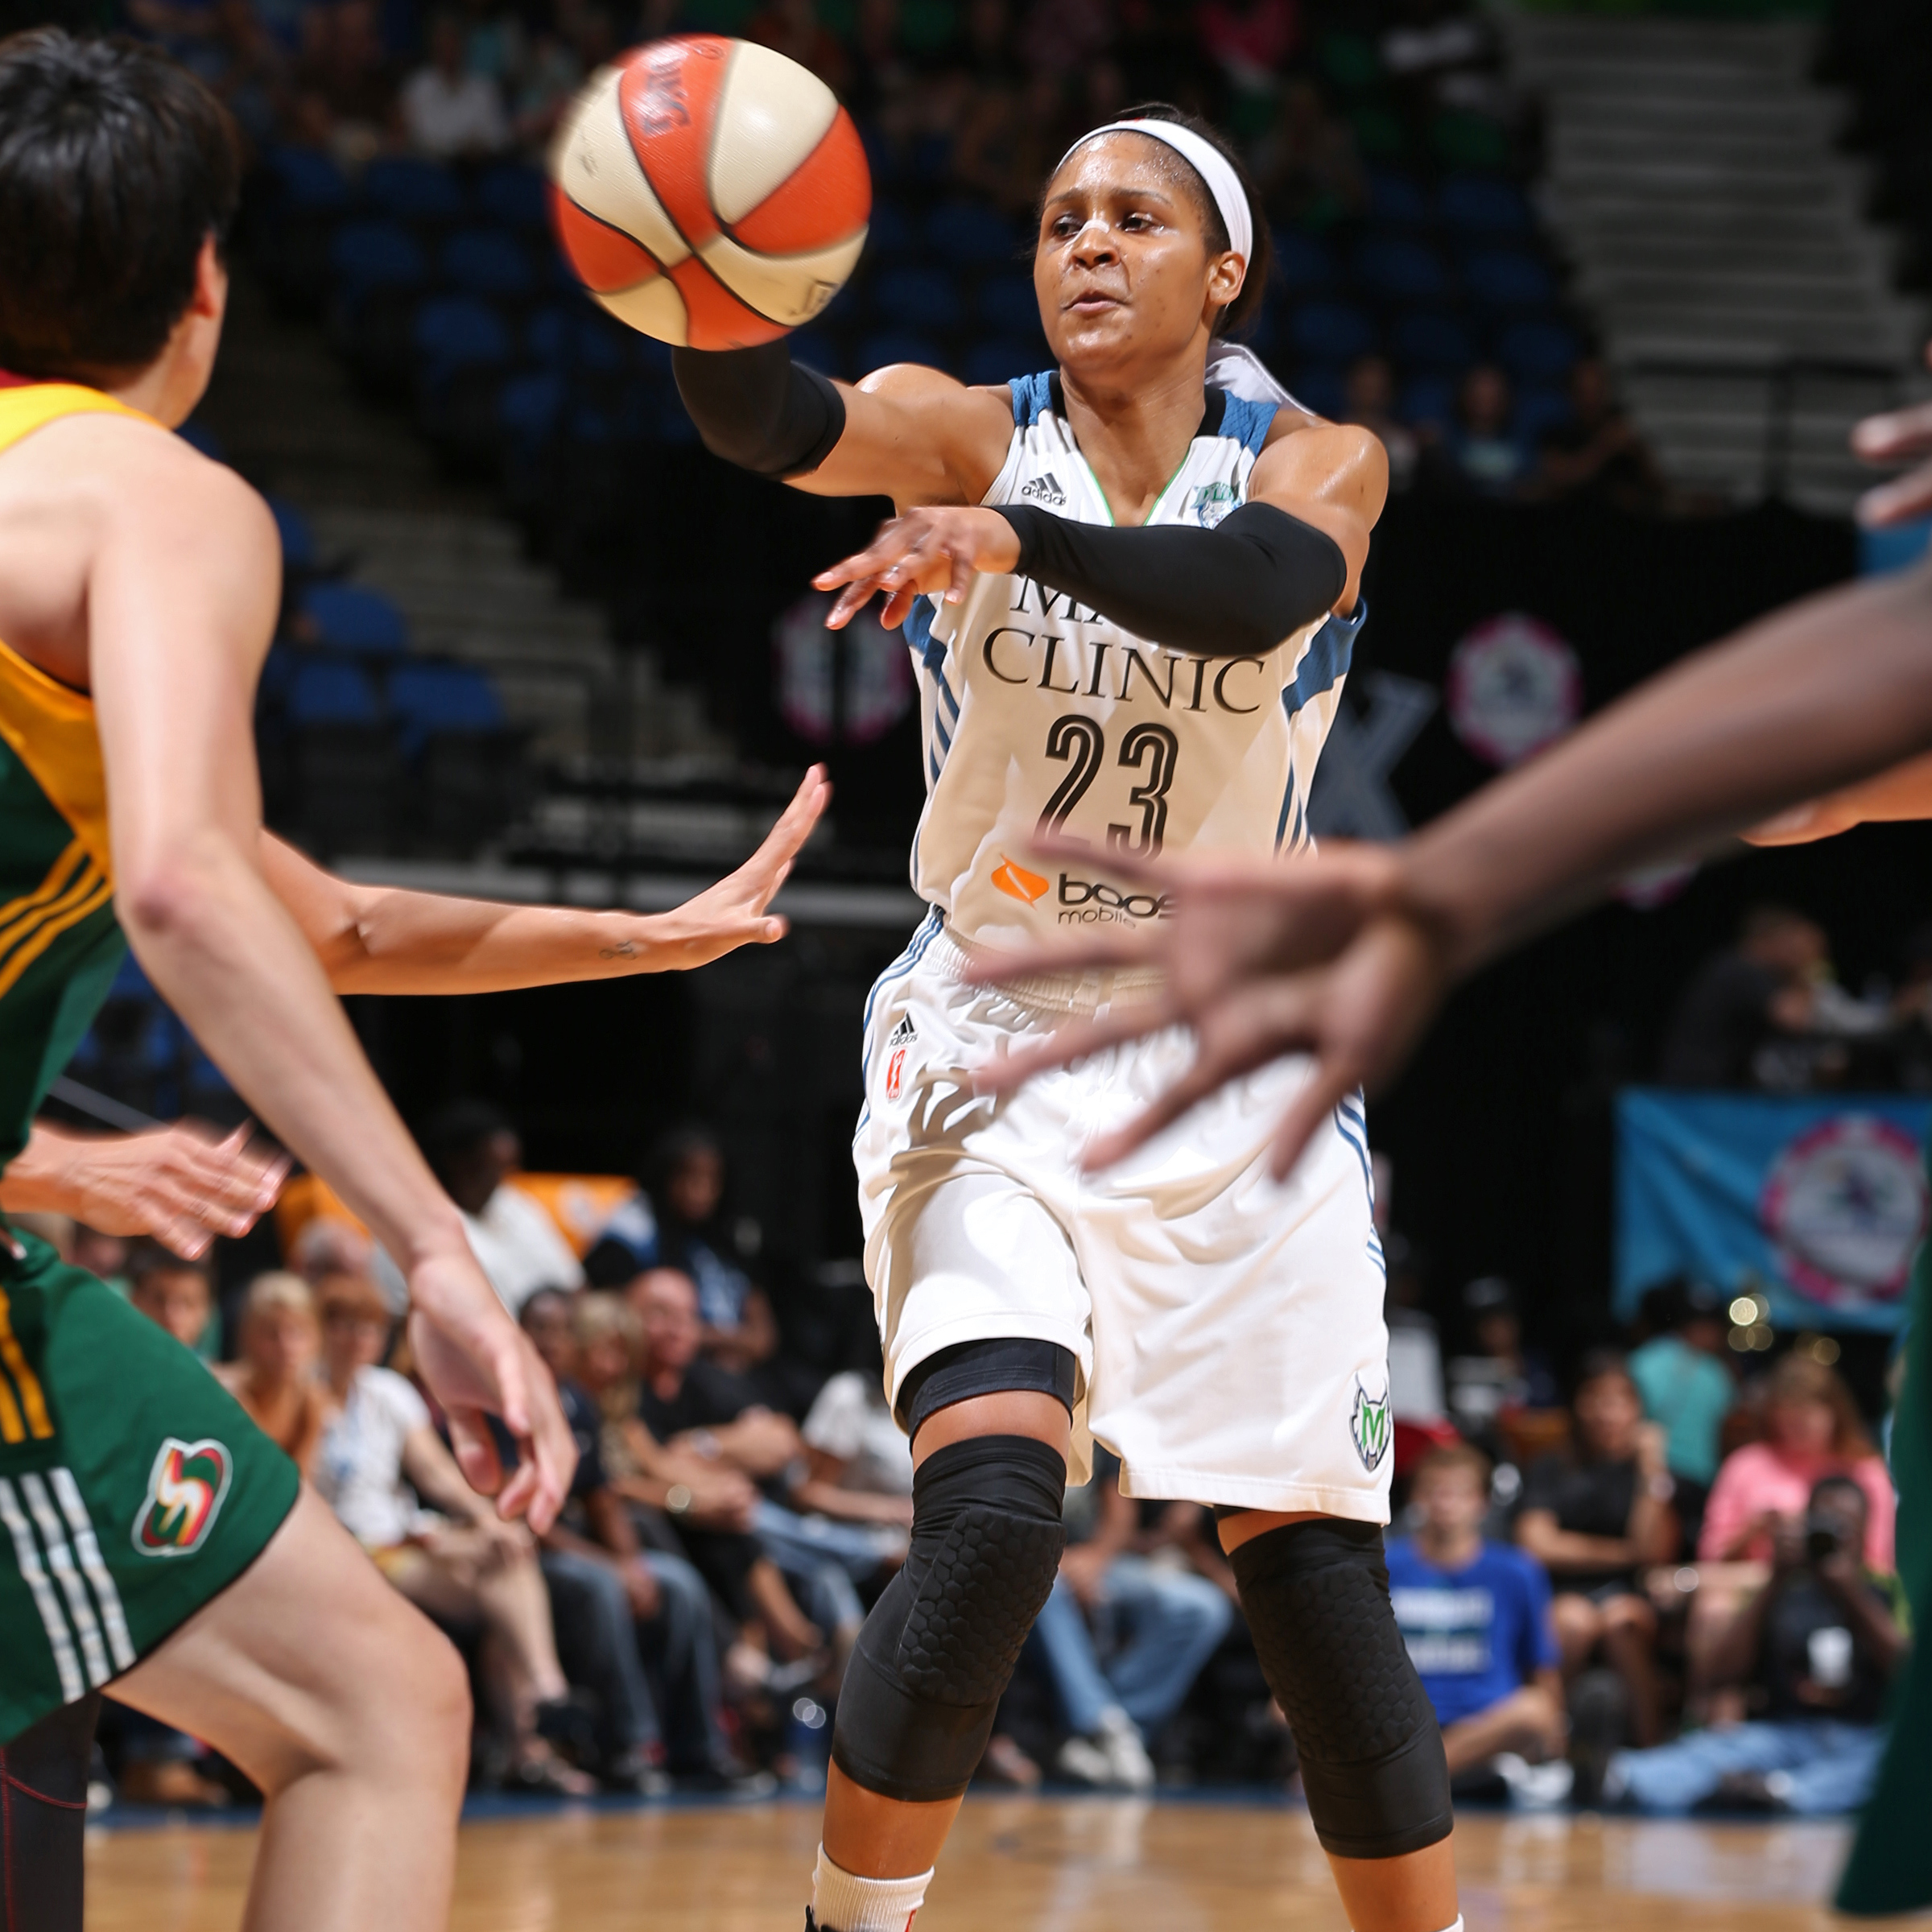 Another game, another 20+ points for Lynx forward Maya Moore. Moore finished Tuesday night's game with 20 points, seven rebounds, five assists and one steal.